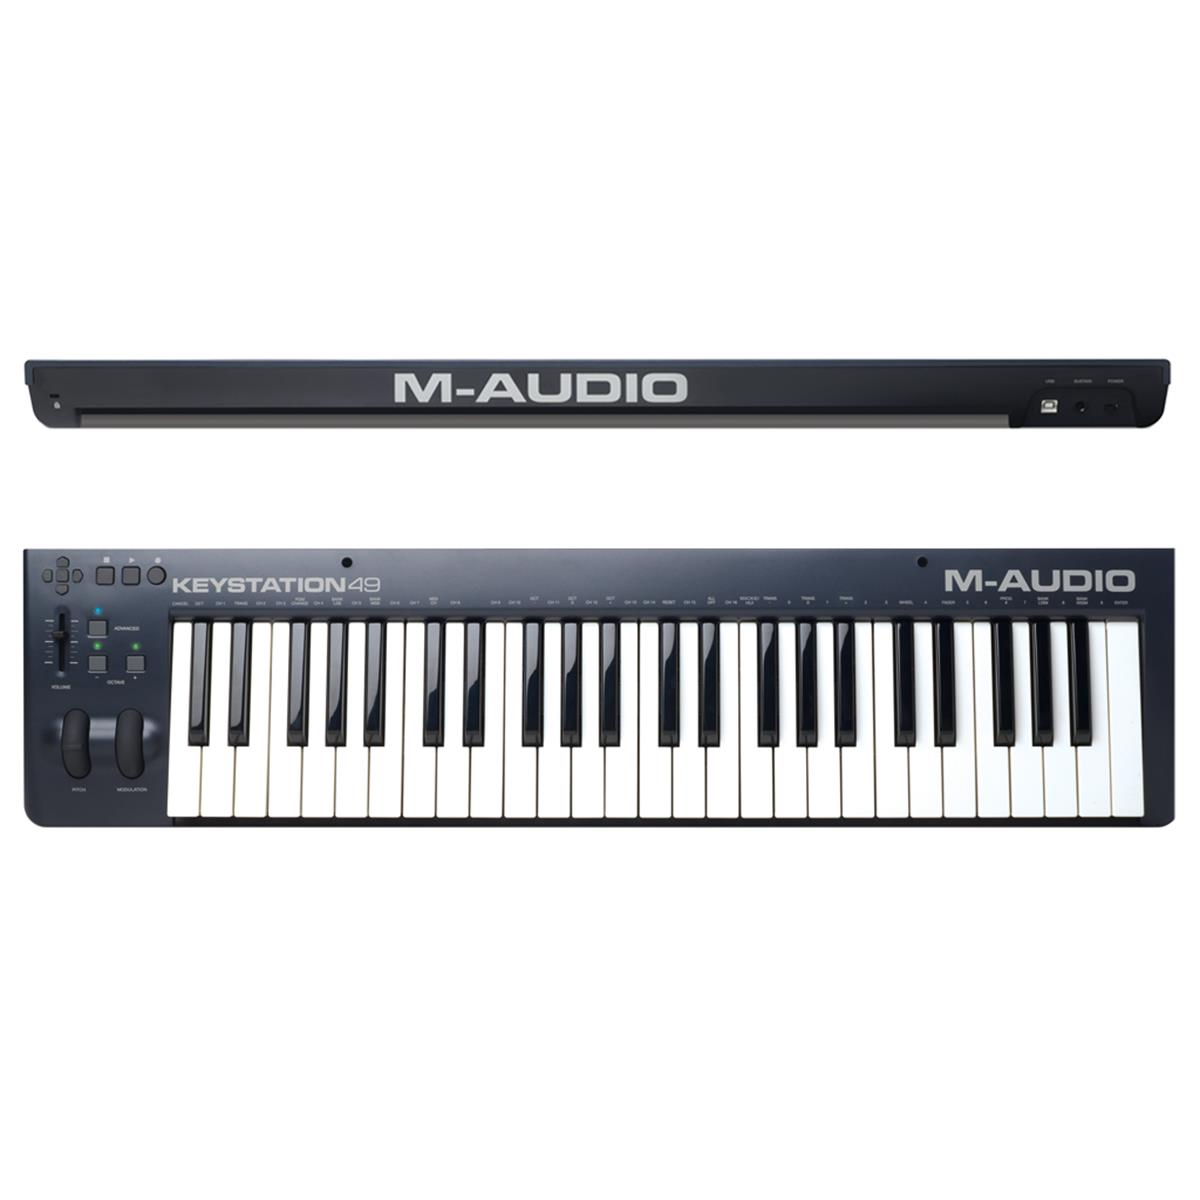 M-AUDIO KEYSTATION 49 2ND GEN